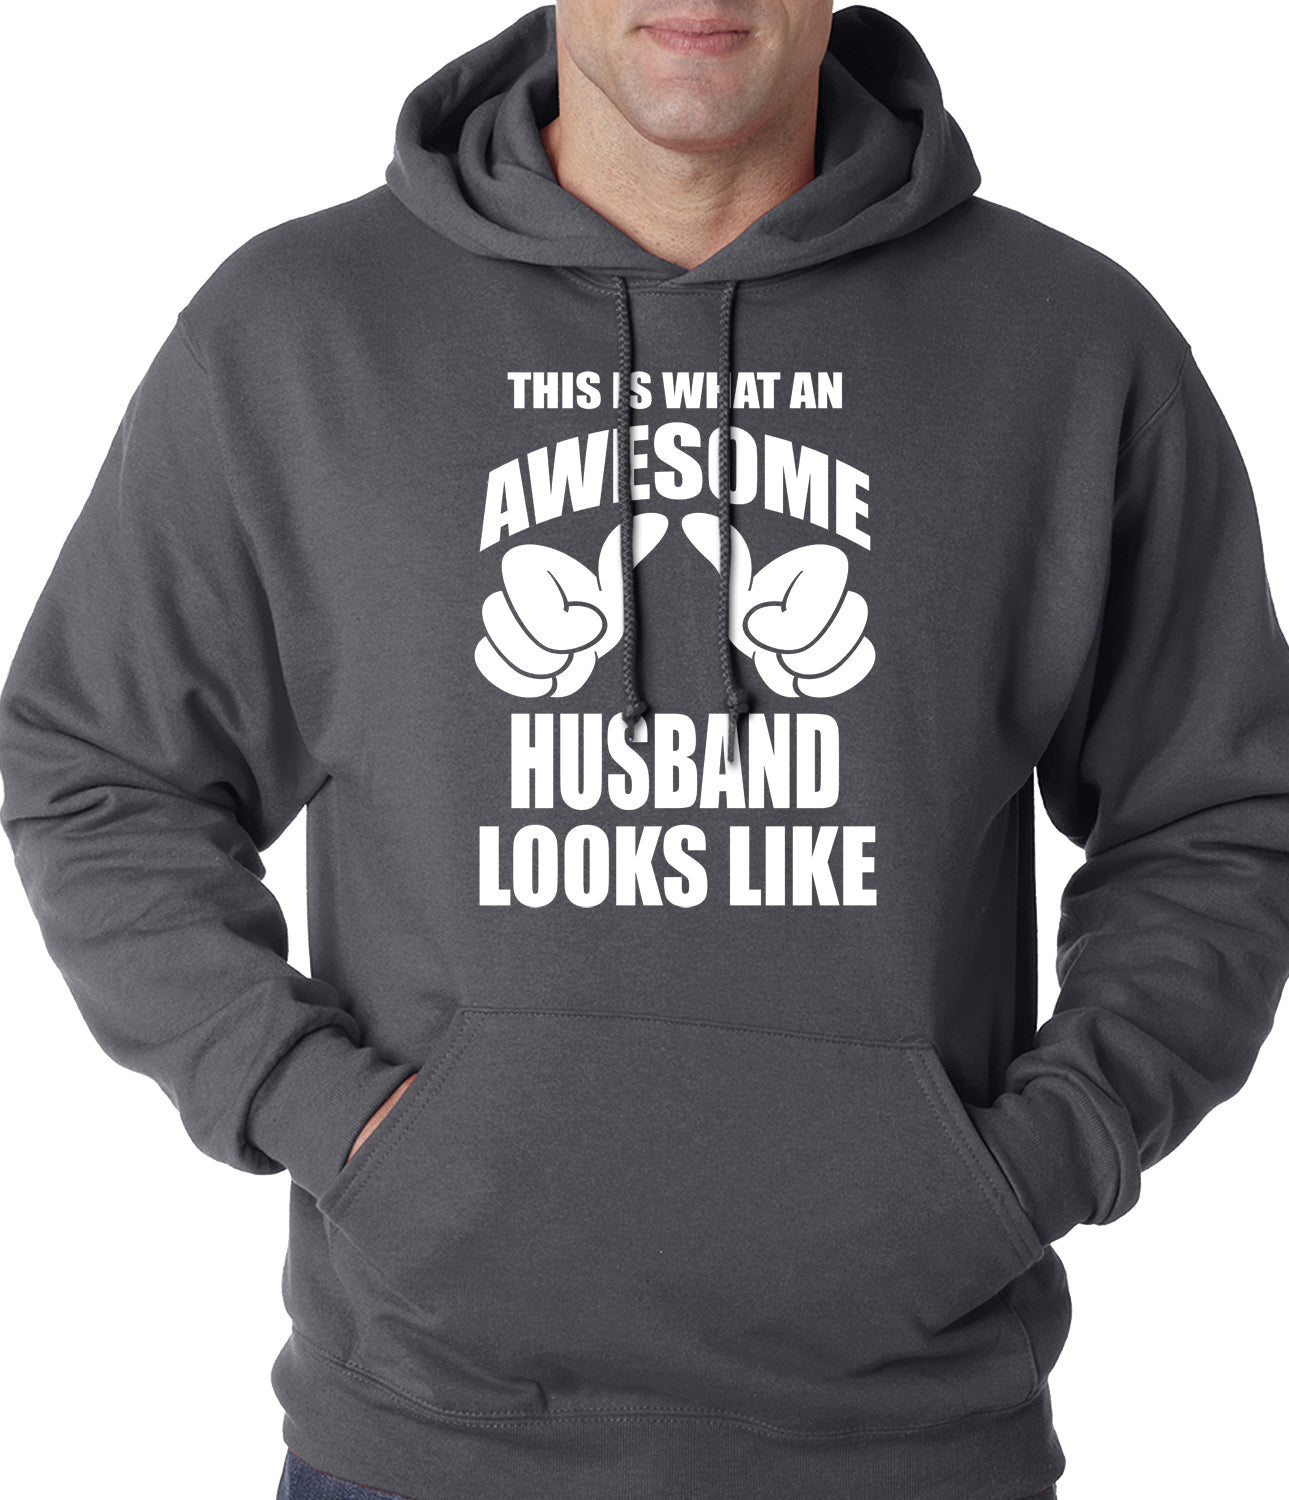 This Is What An Awesome Husband Looks Like Adult Hoodie